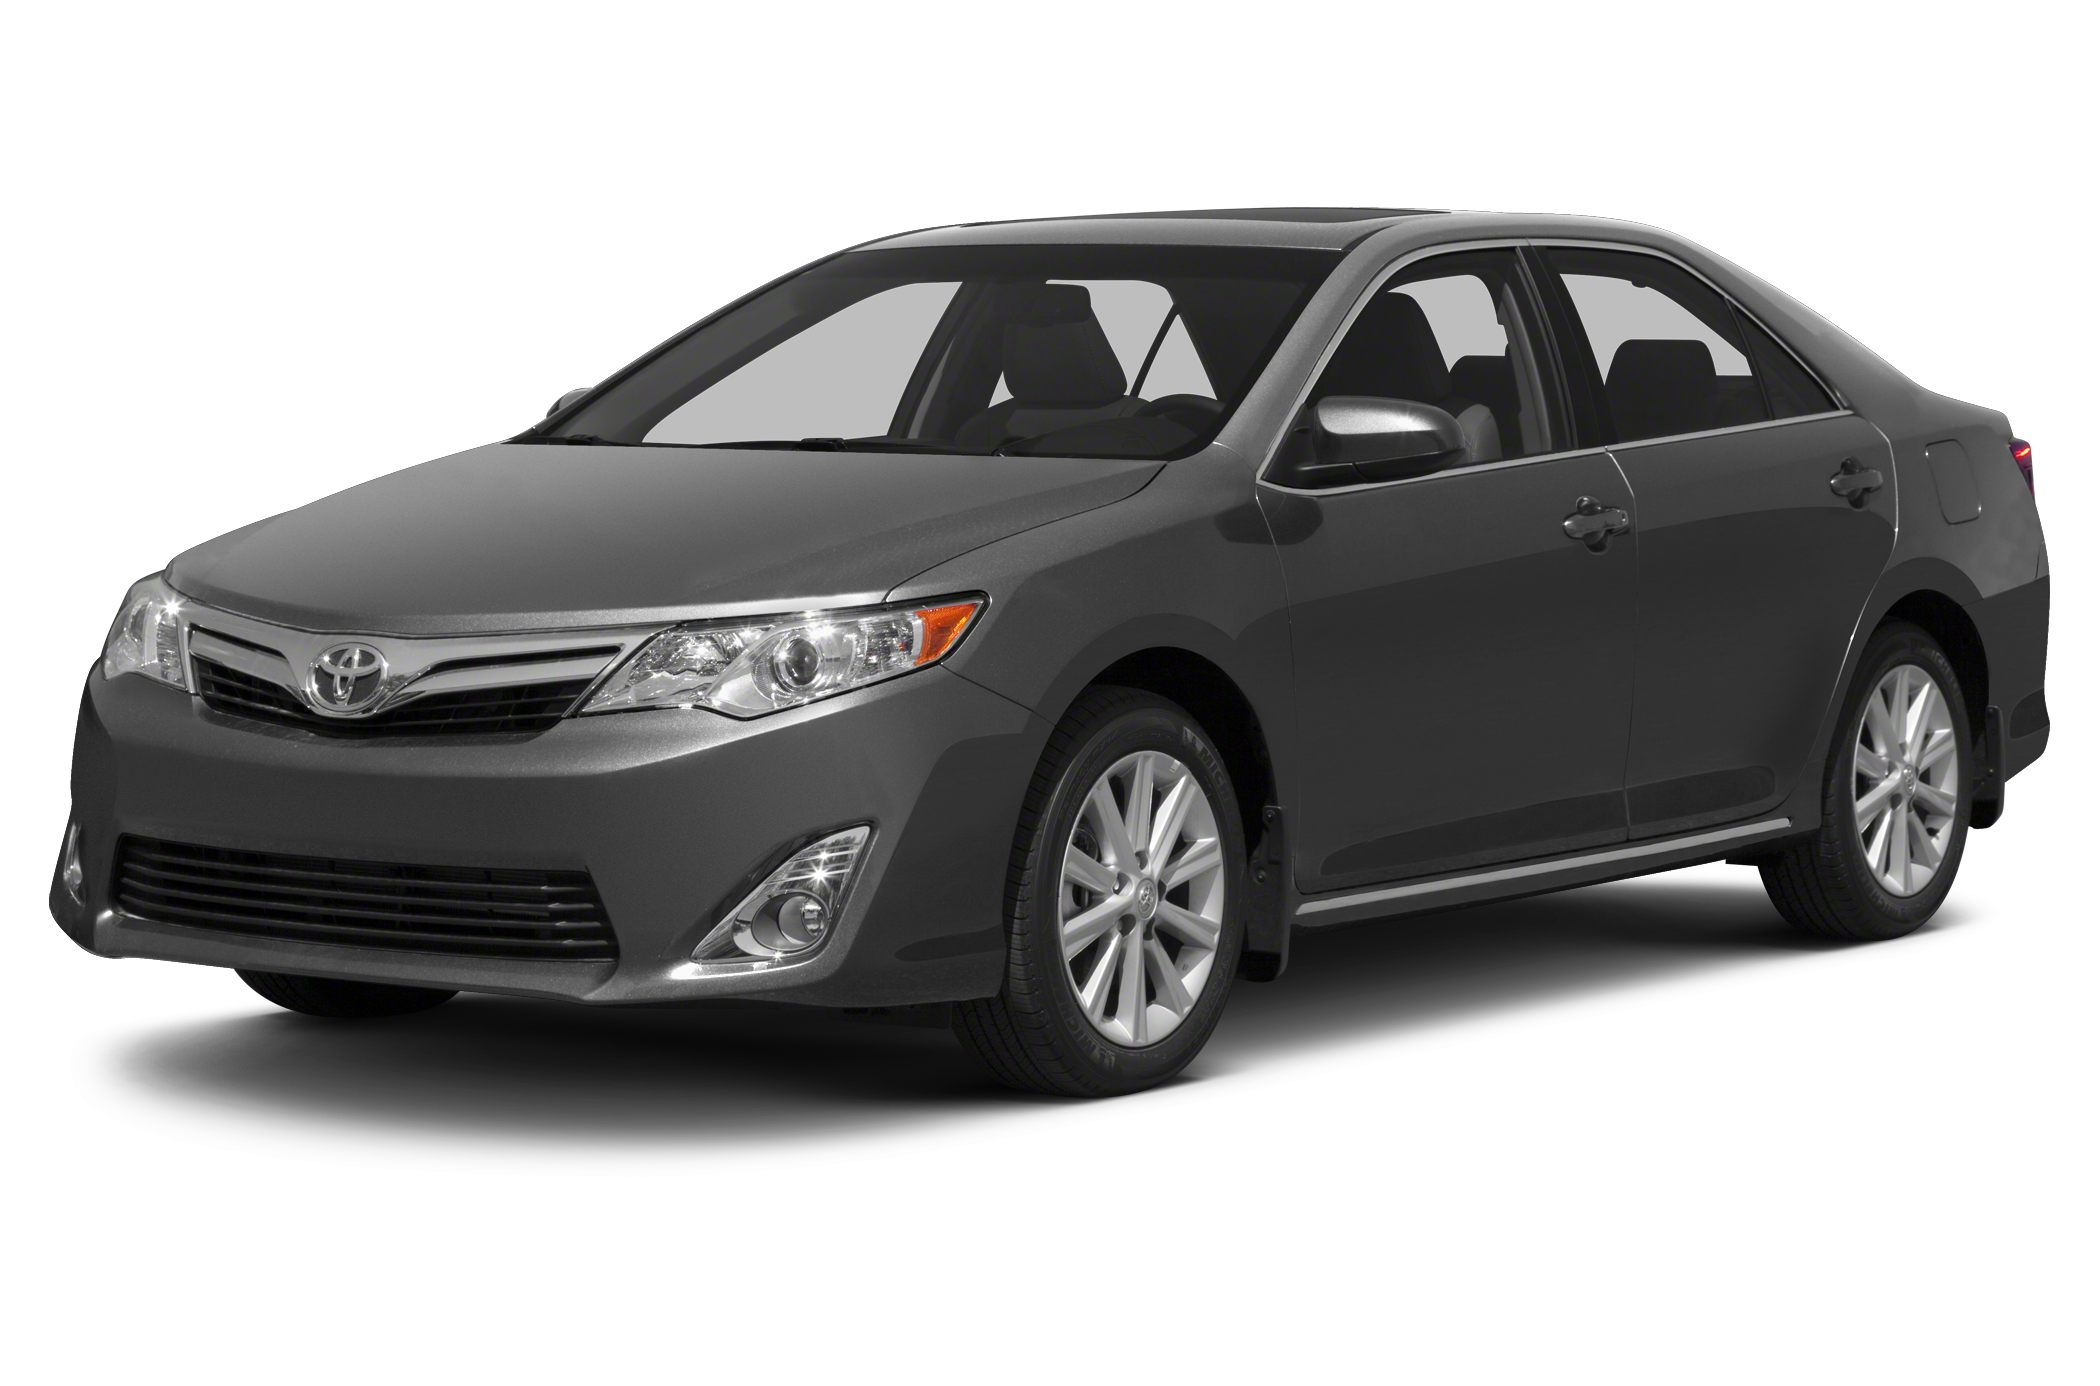 2012 Toyota Camry LE Sedan for sale in Nicholasville for $14,940 with 84,085 miles.